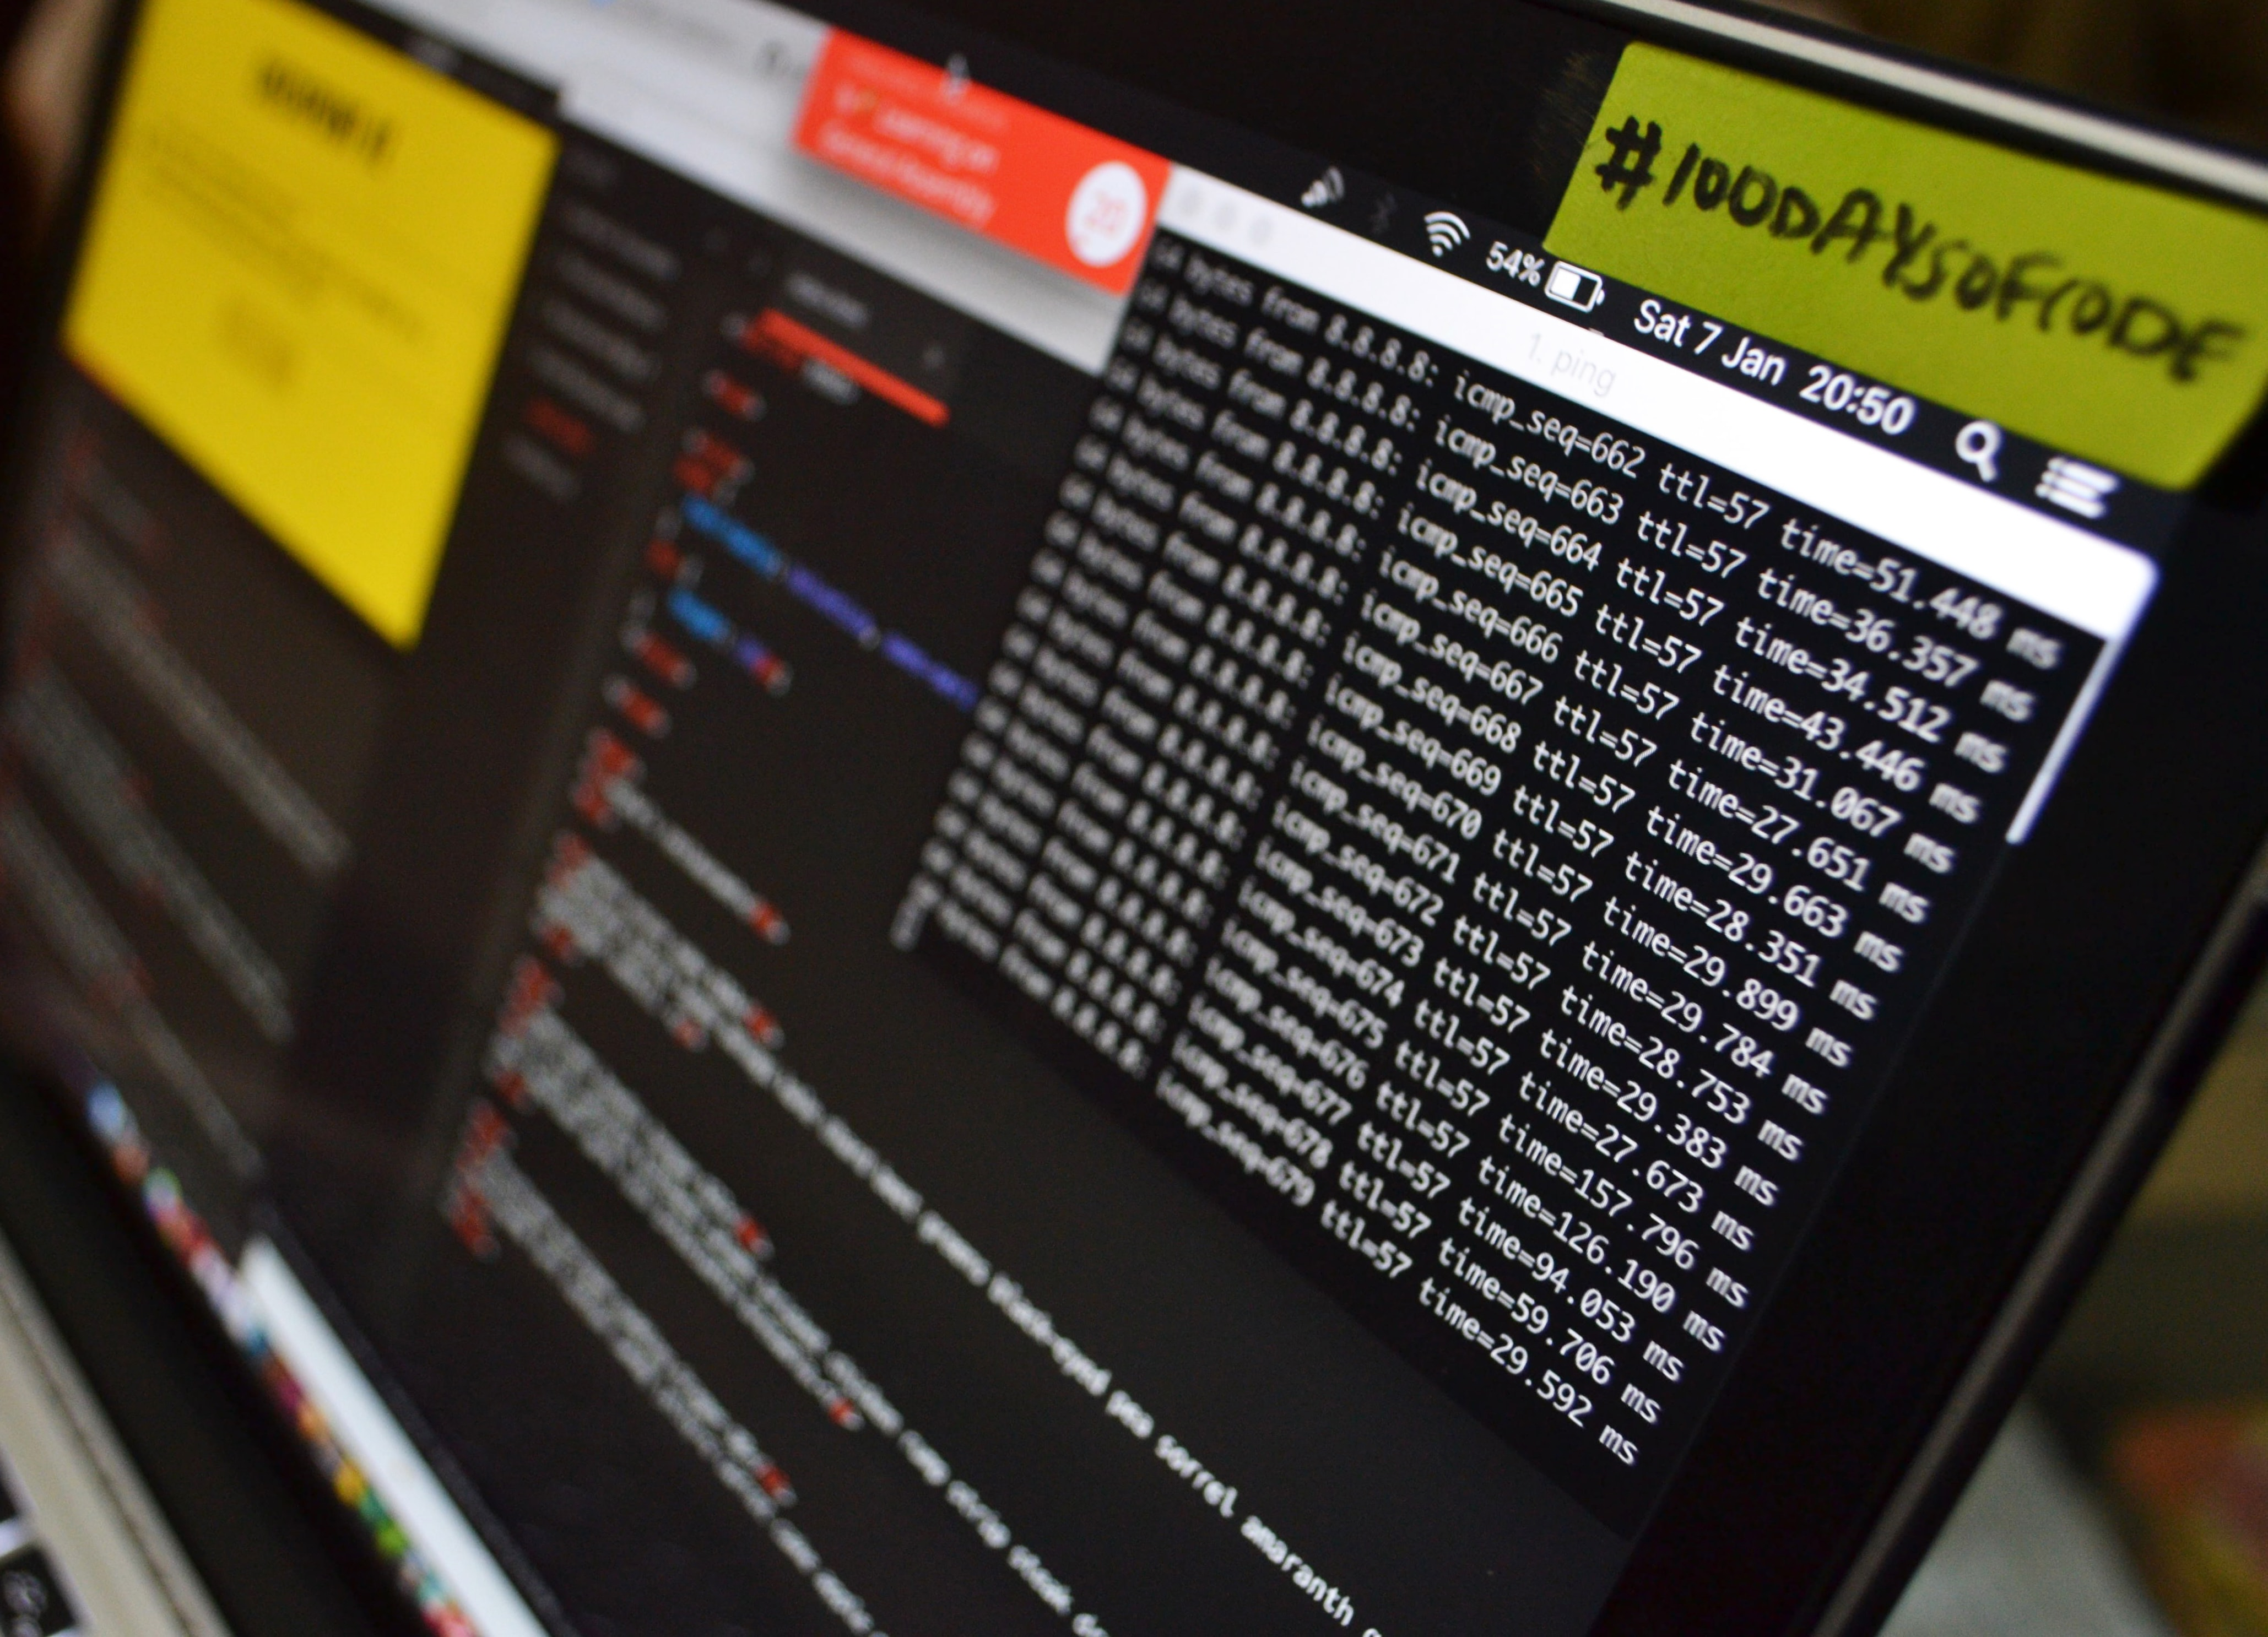 Despite Best Efforts, it's Difficult to Make Data Anonymous